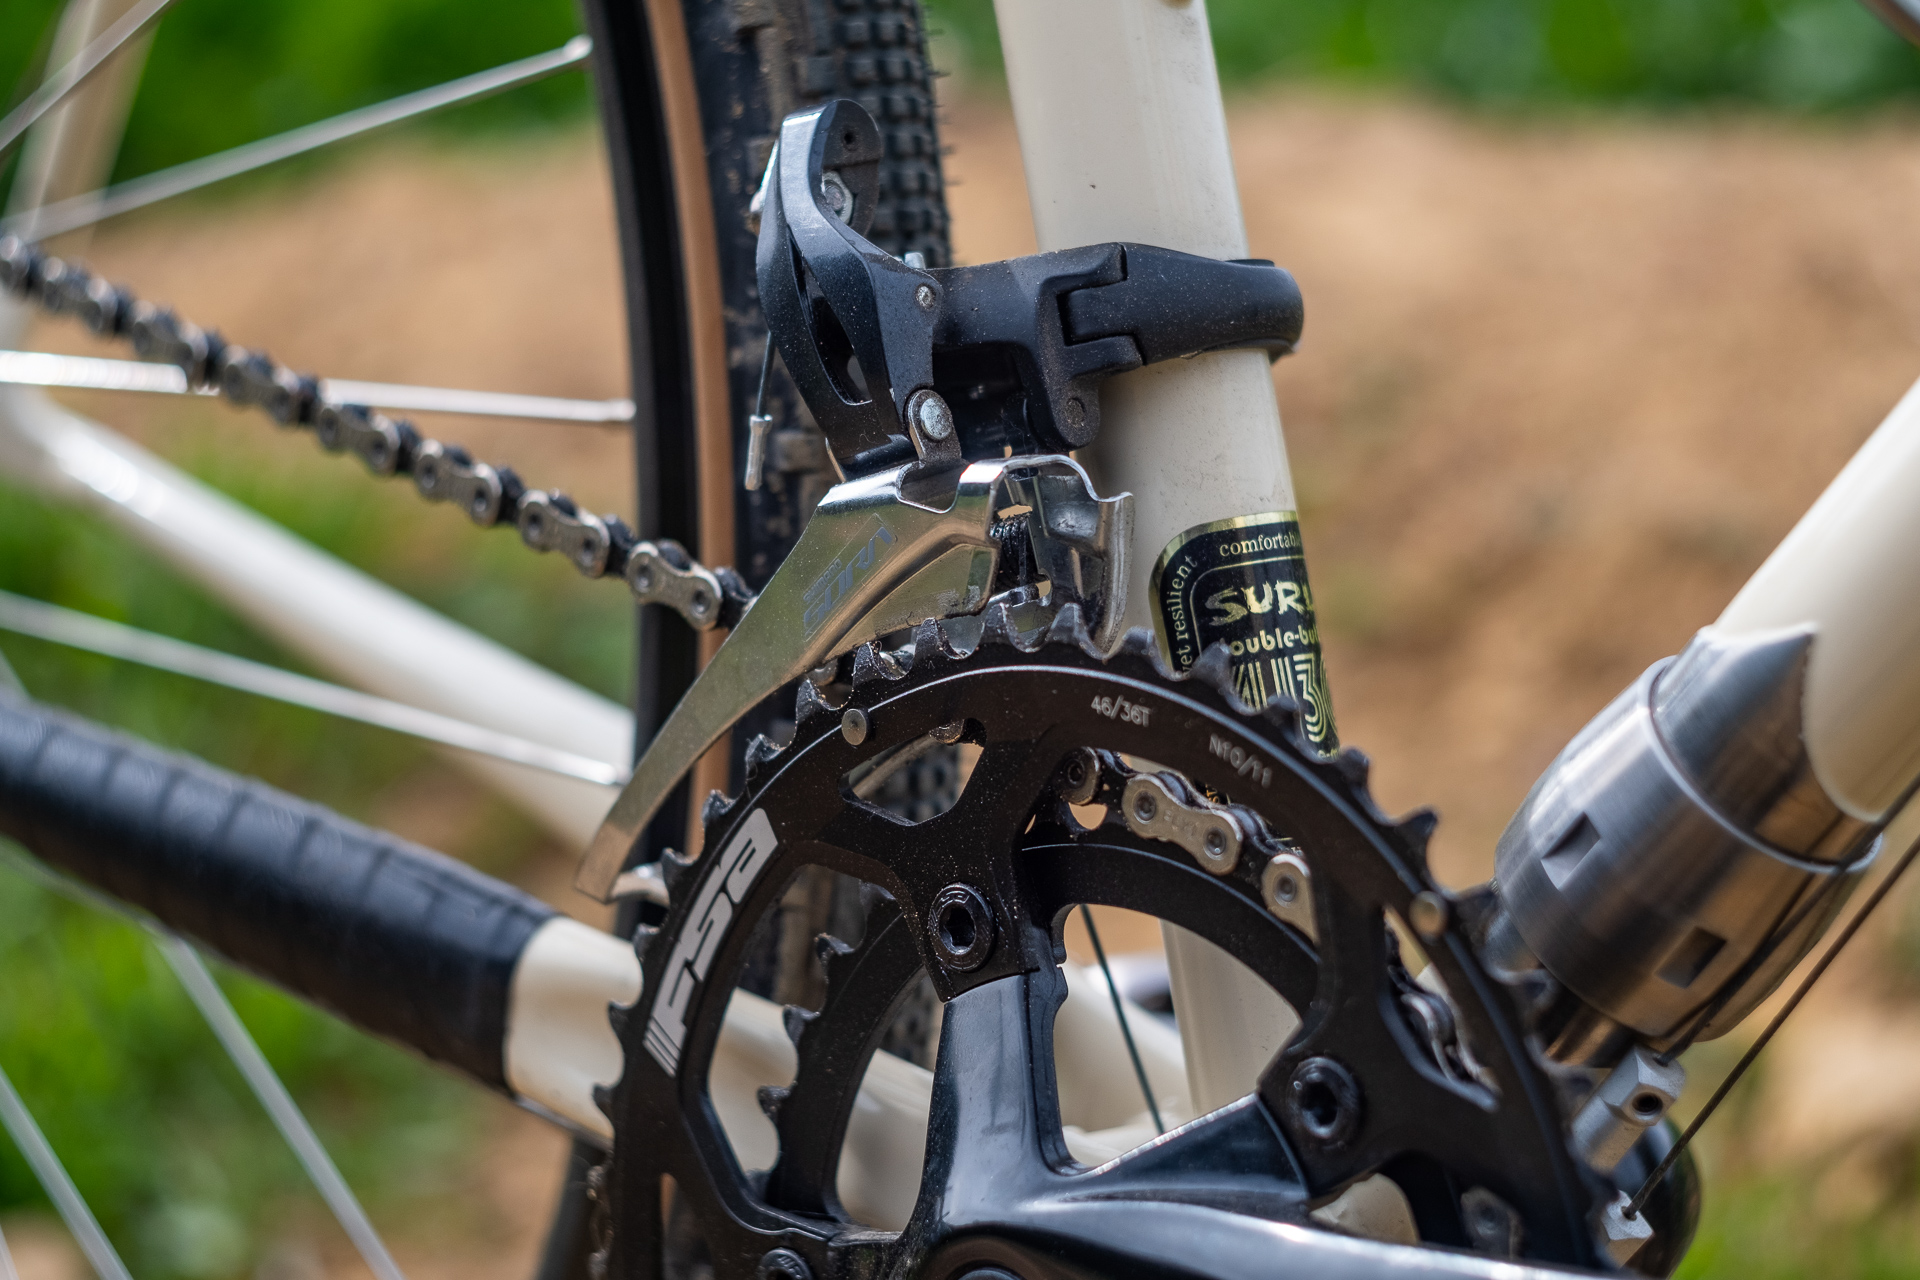 Surly Travelers Gravelers Check Shimano Sora derailleur detail.